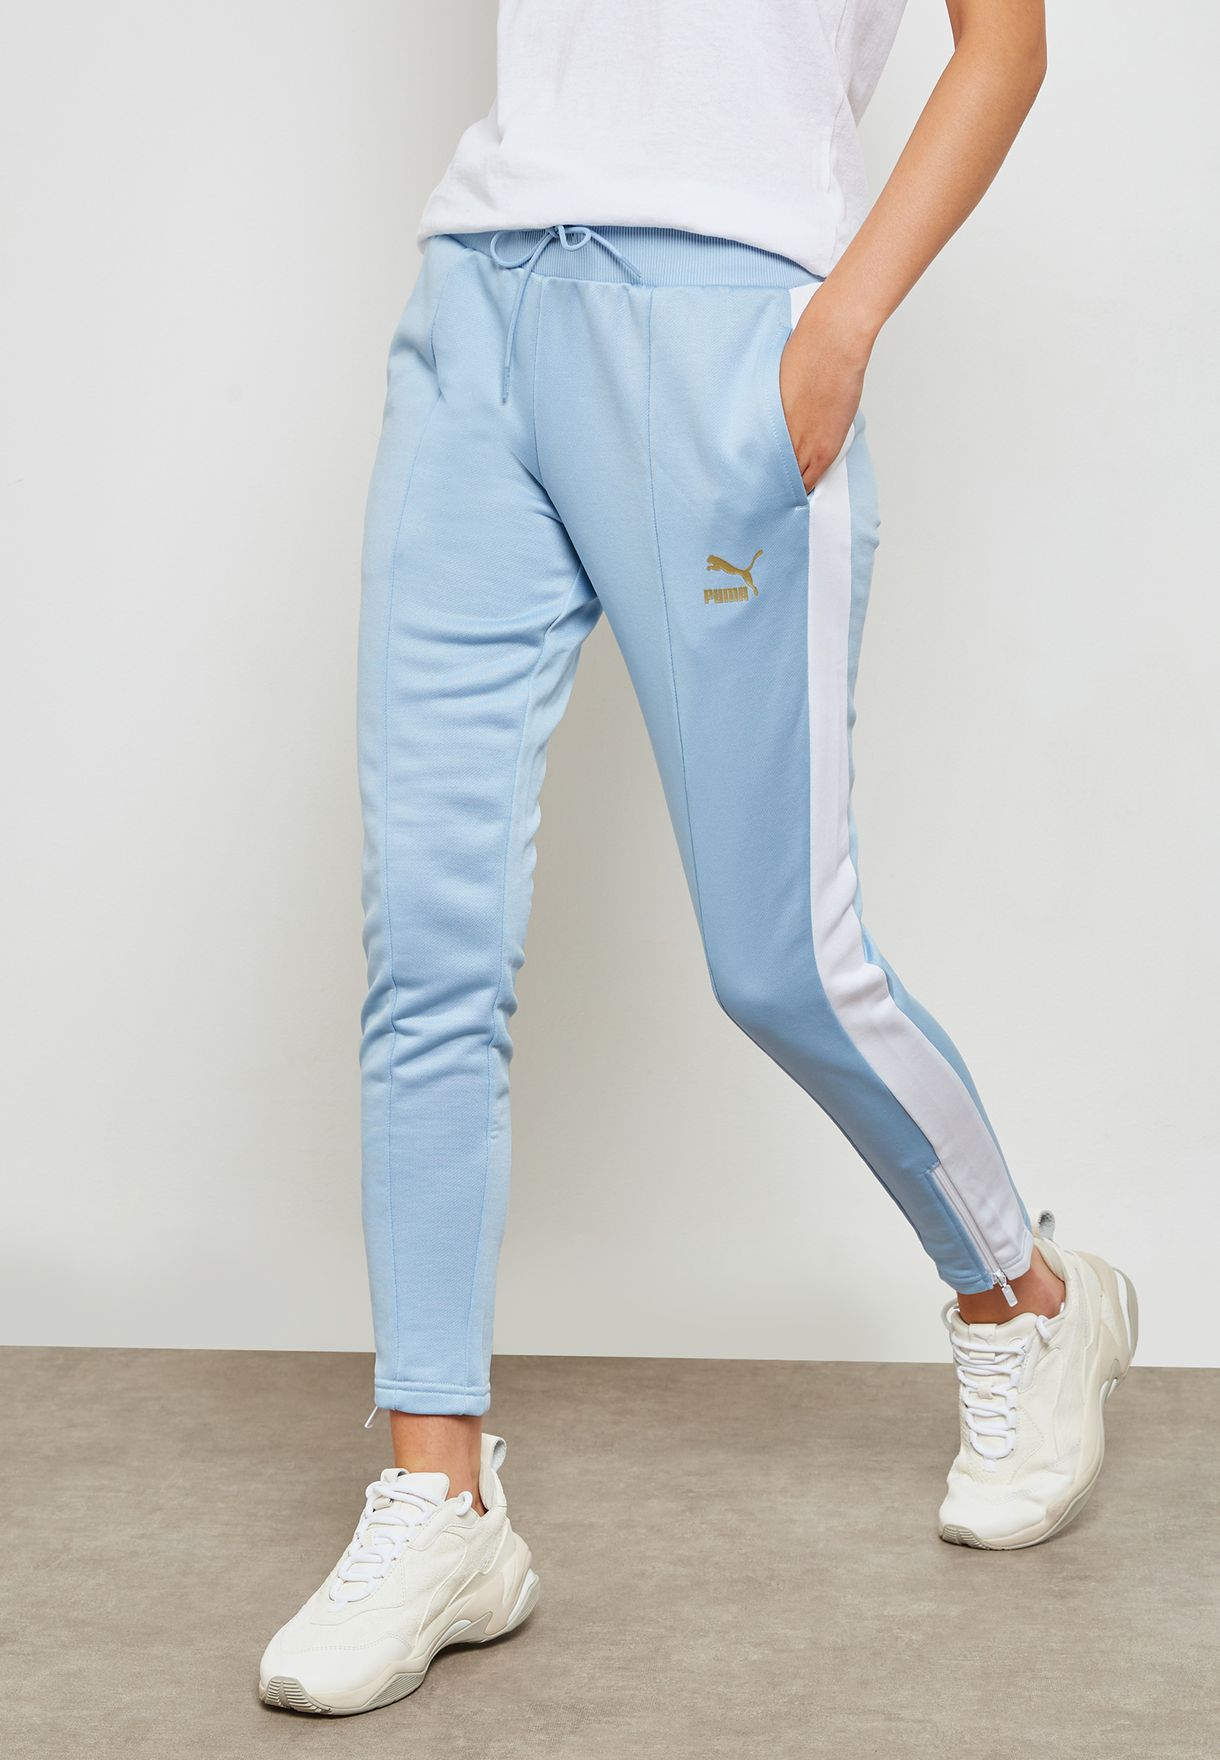 665dee37c4cf Shop PUMA blue Retro Track Pant 57651432 for Women in Saudi ...